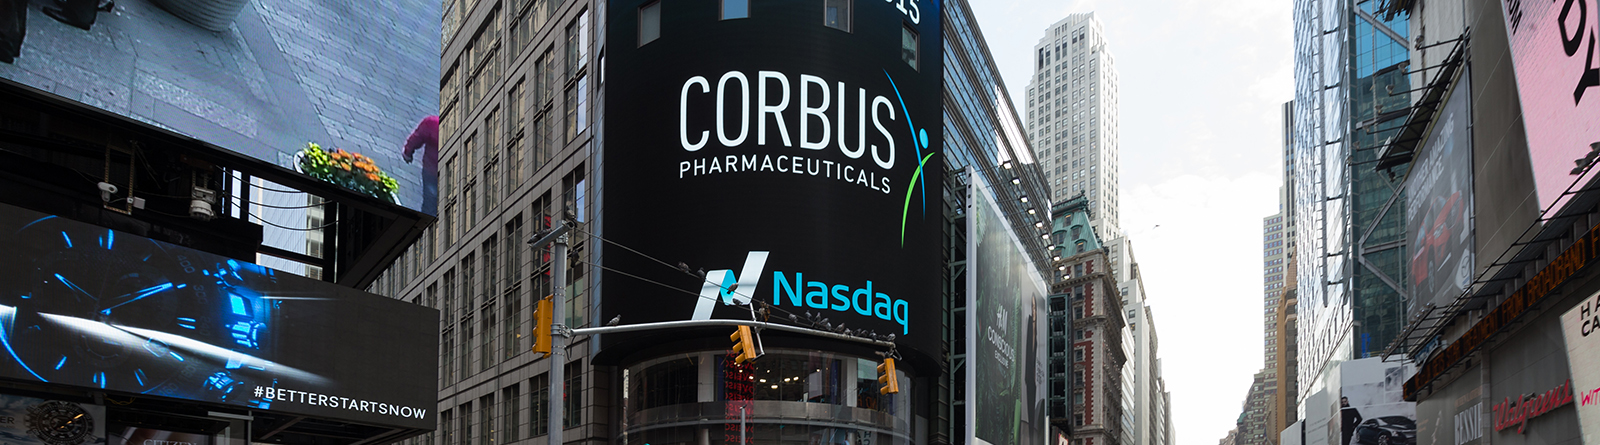 Corbus Pharmaceuticals Announces Preclinical Data Demonstrating JBT-101 Reduces Inflammation in Alveolar Macrophages from Cystic Fibrosis Patients Banner